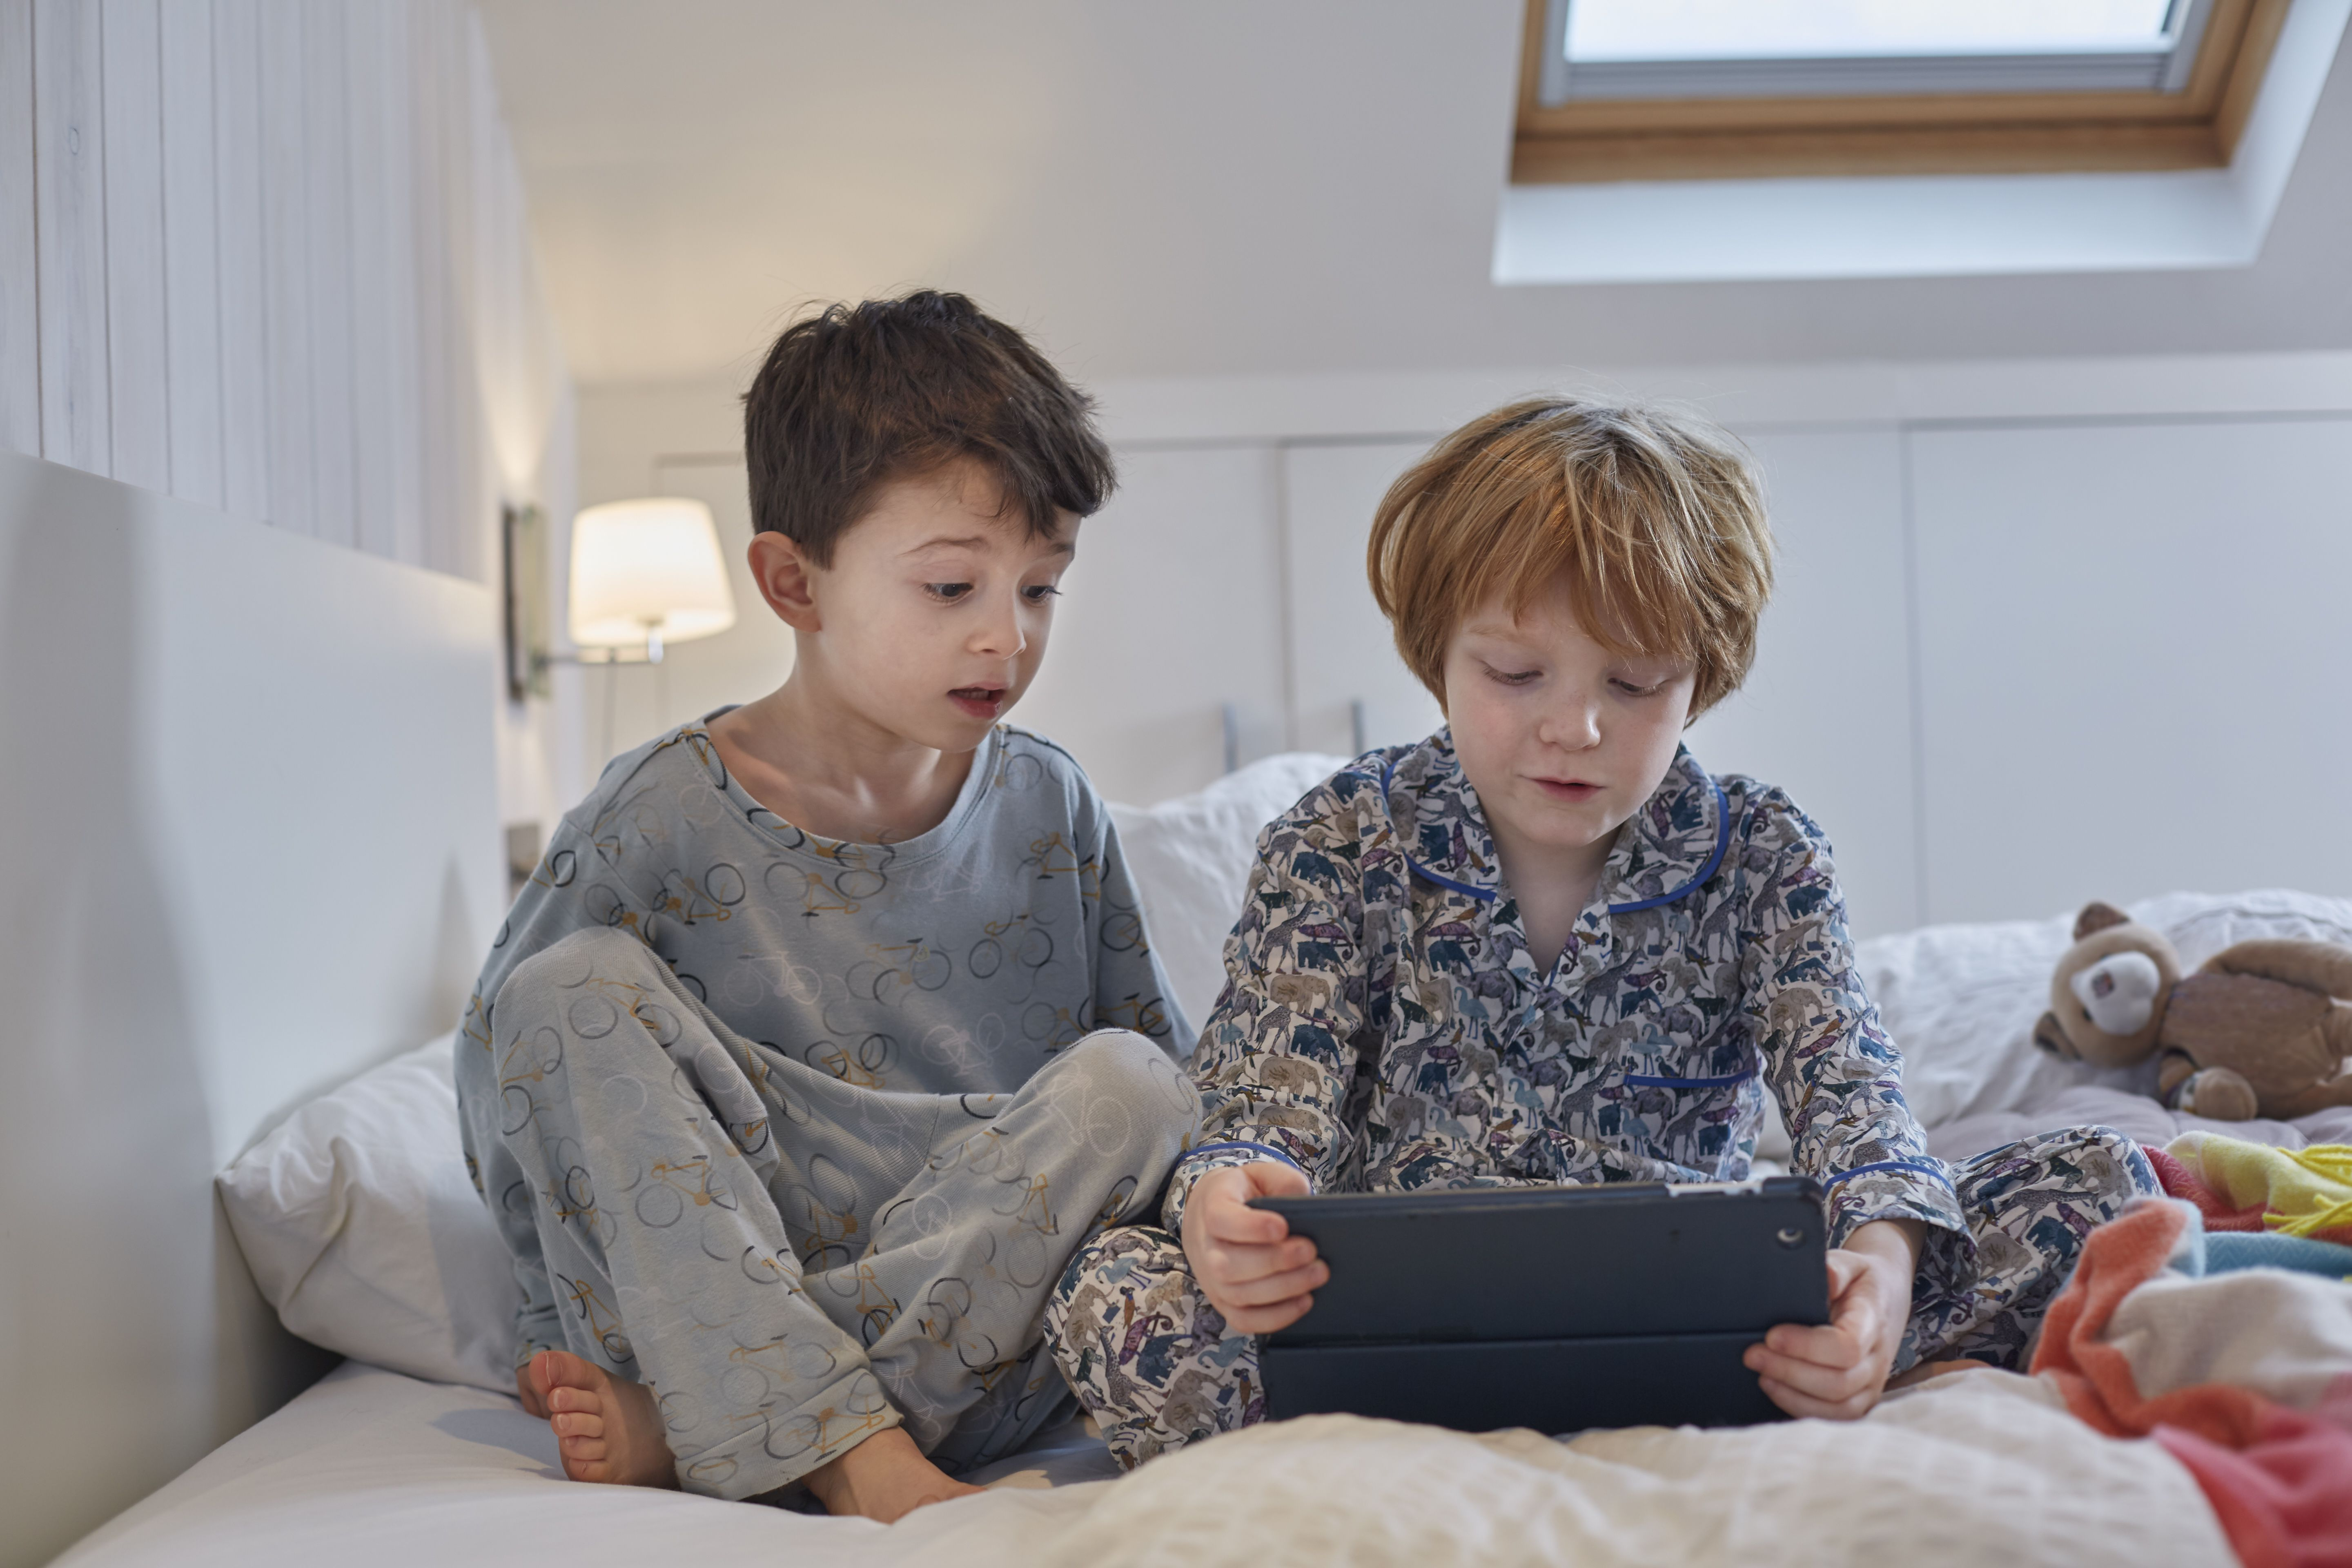 15 Free Diy Loft Bed Plans For Kids And Adults Diagram Of Computer Parts Boys In Pyjamas Using Digital Tablet